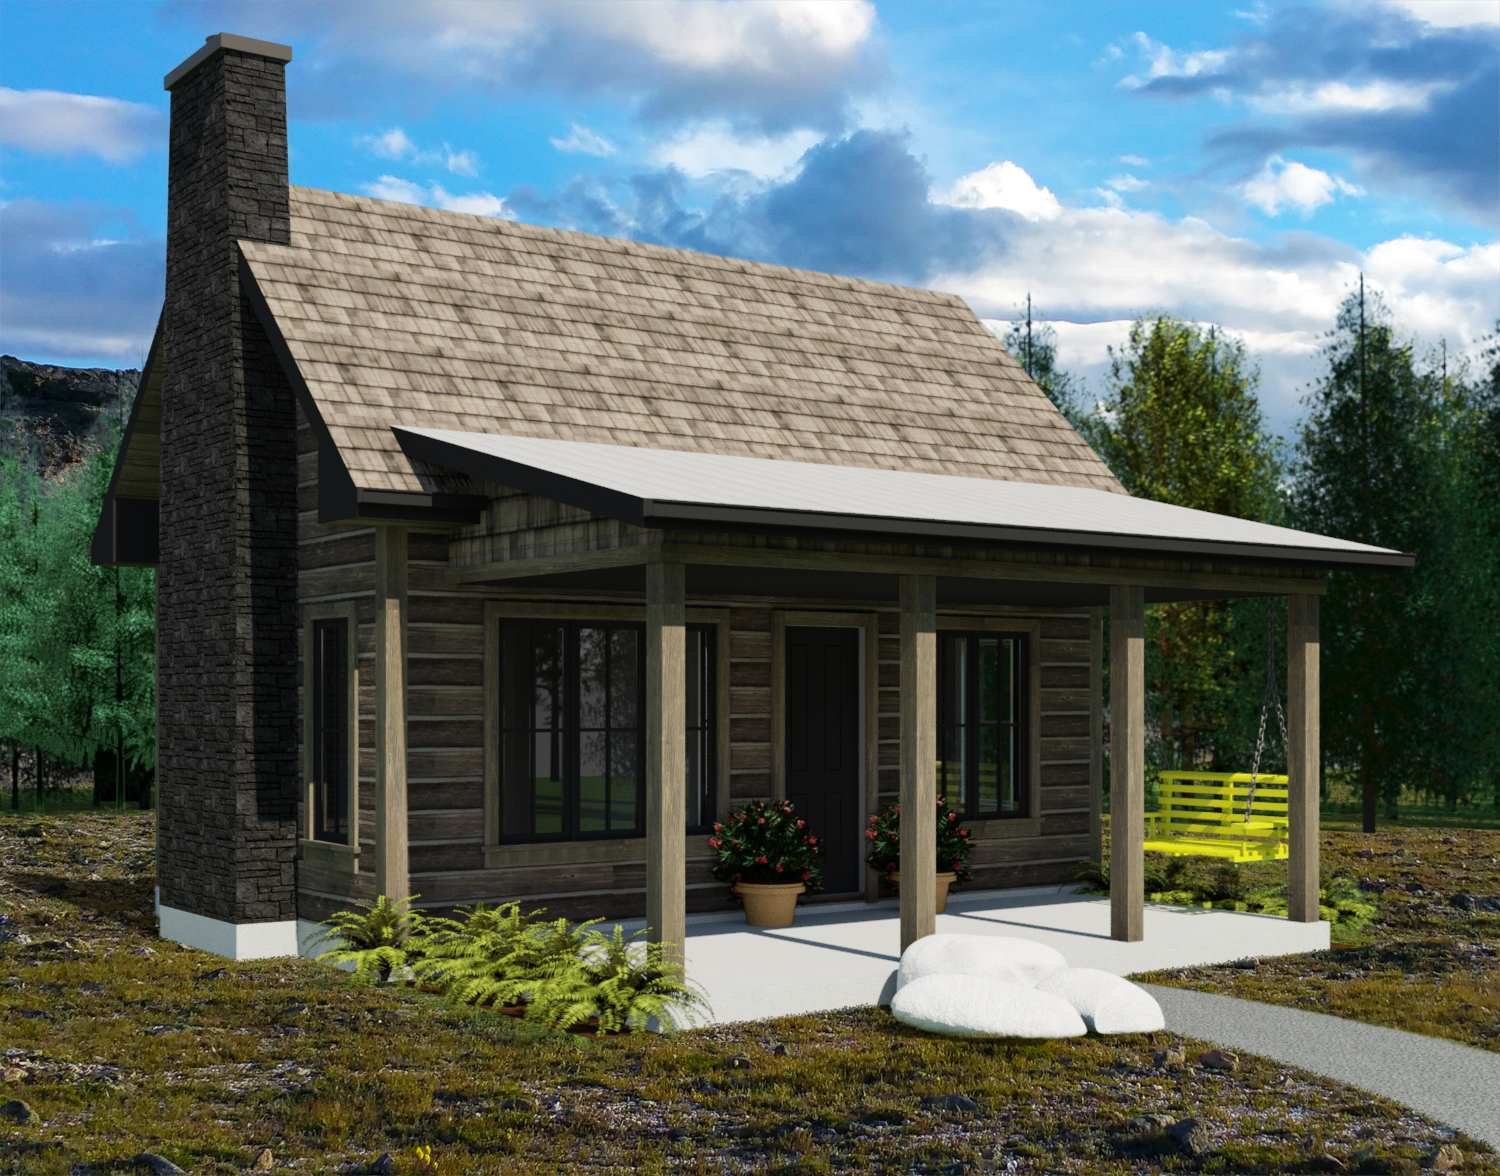 Designing A Small House The Yukon Tiny House Plans By Robinson Residential